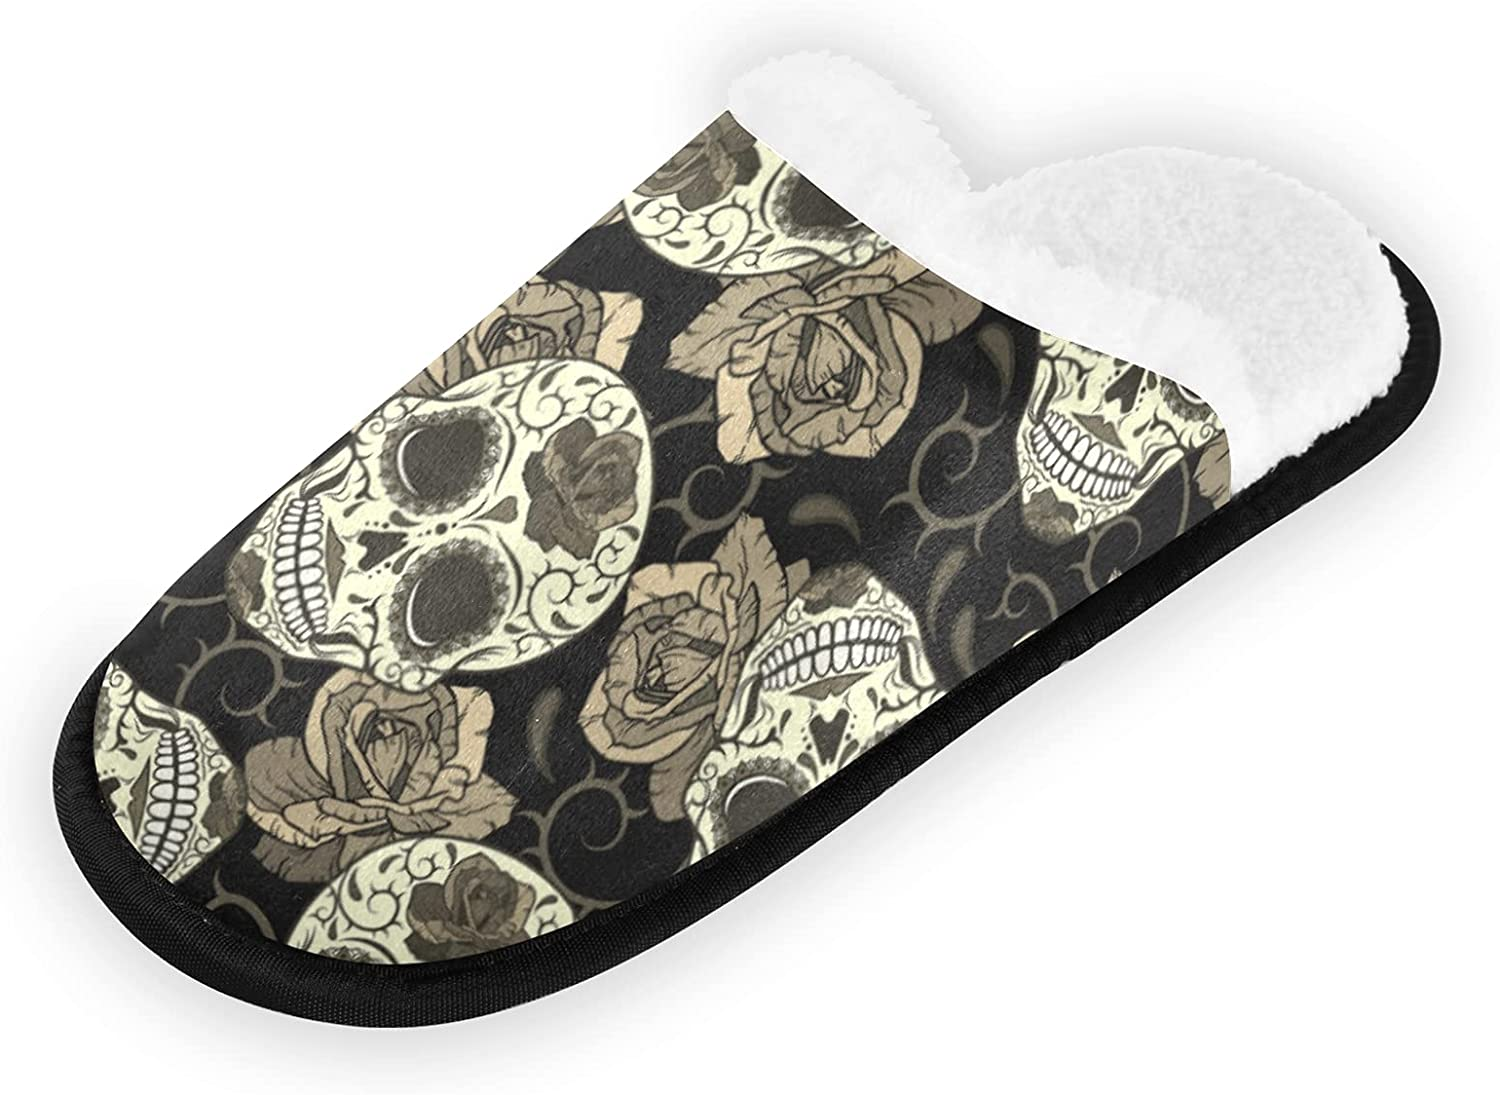 Popular brand Vintage Retro Seamless Gothic Sugar Tho Skulls with Roses Challenge the lowest price of Japan